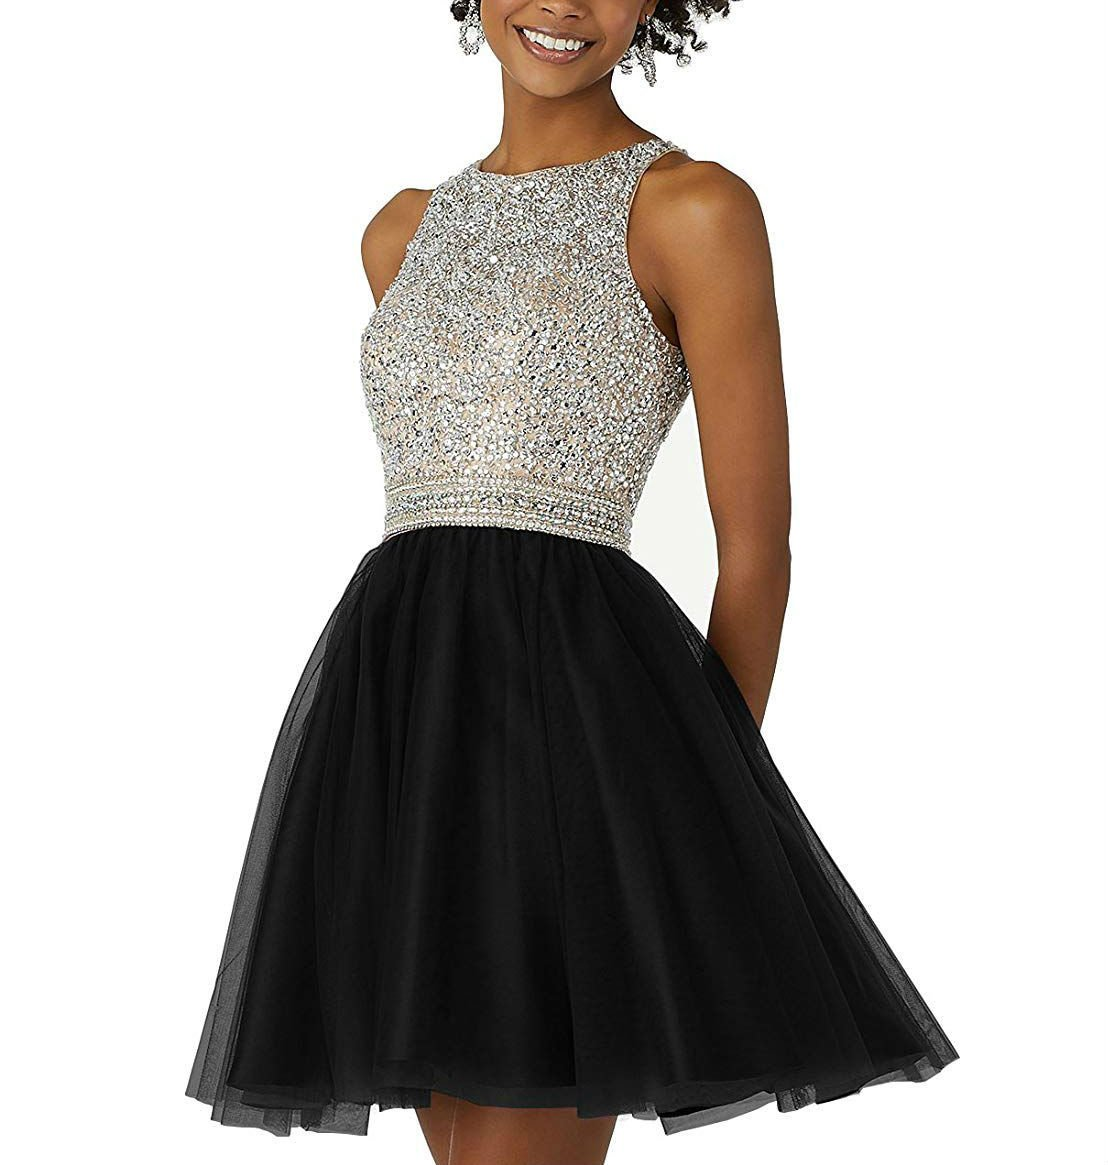 Homecoming Dresses for Juniors Beaded Open Back Tulle Short Prom Party Dresses Black Size 16